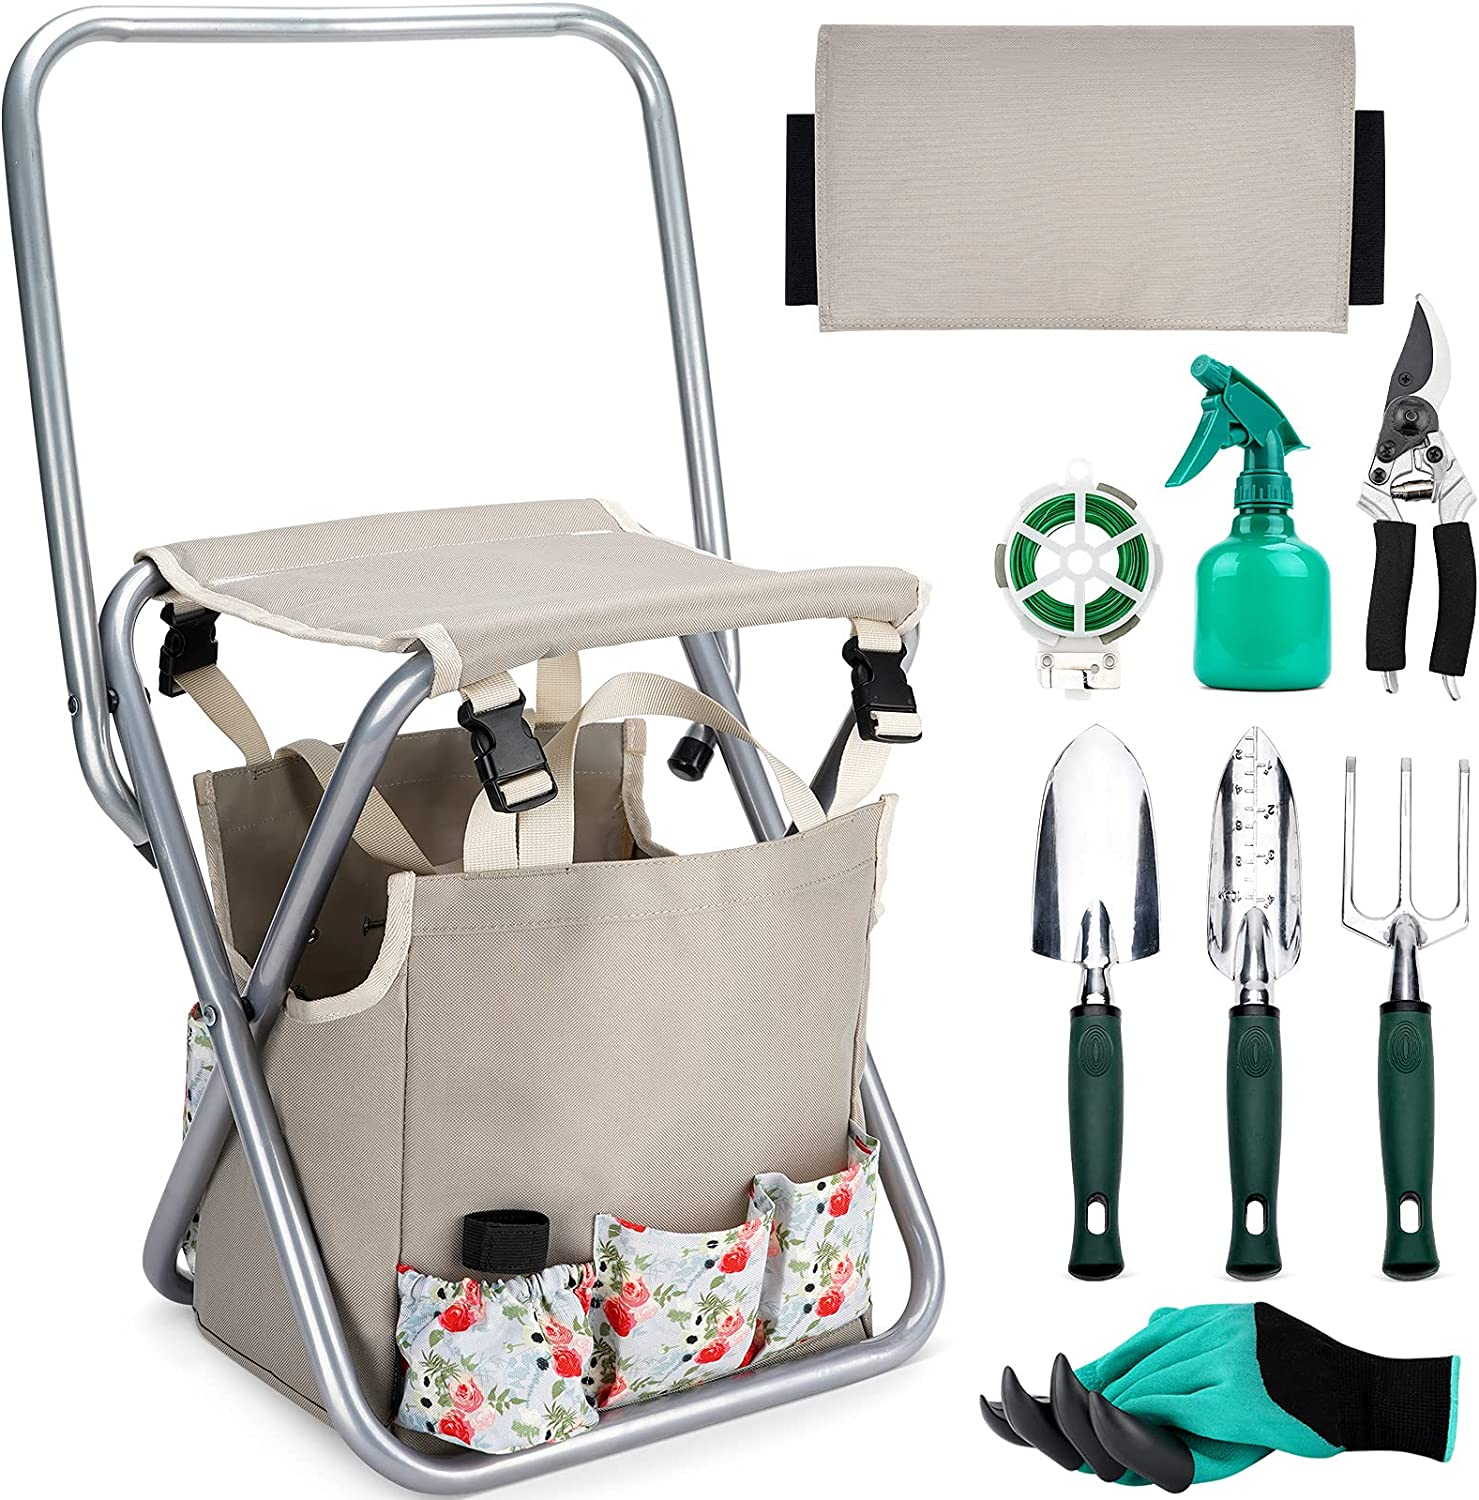 INNO STAGE 10 Piece Garden Hand Tools Set, Collapsible Gardening Stool Seat Kit with Backrest and Detachable Storage Tote Bag for Father Mother as Gift - Rose